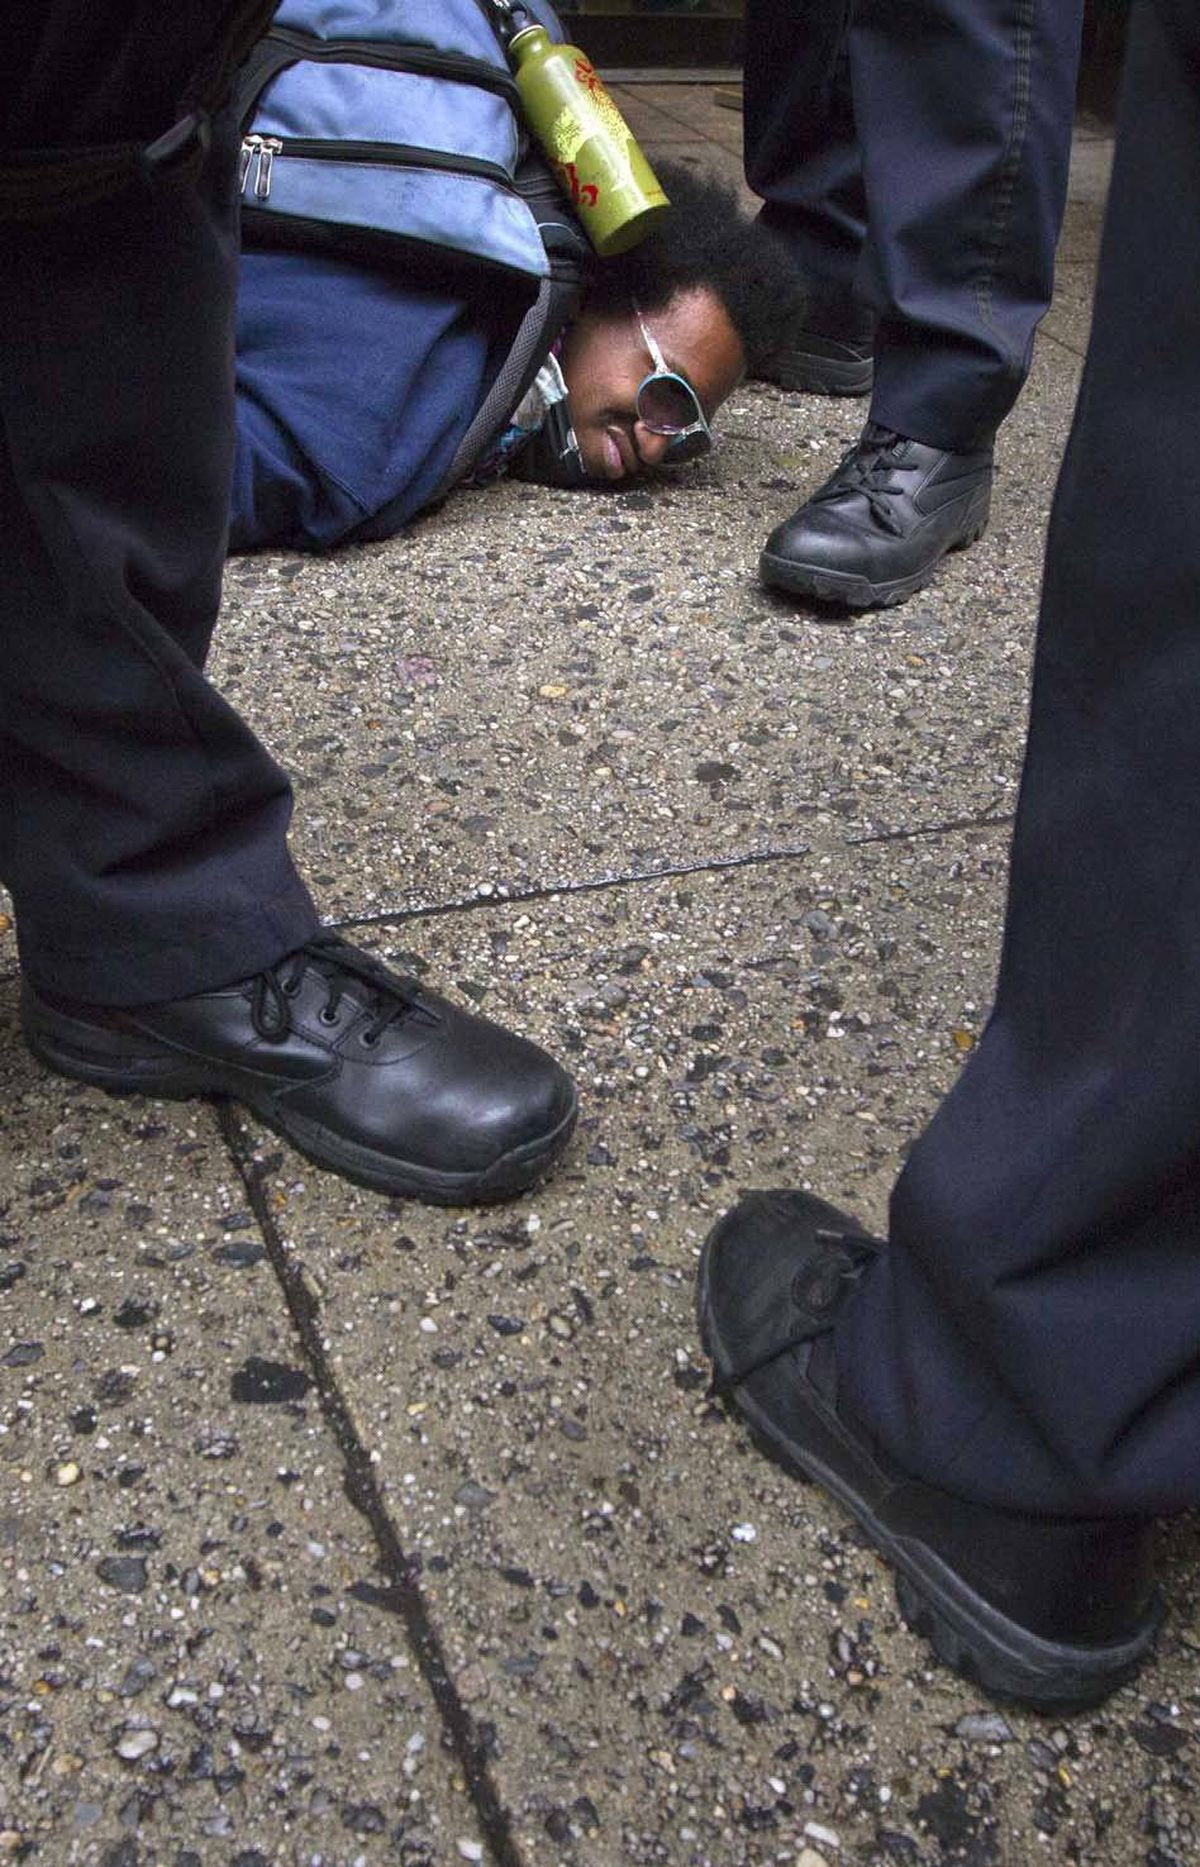 An Occupy Wall Street activist, seen here talking to some police officers during a May Day march in Manhattan on Tuesday, is relieved to hear George Clooney had a good time at the White House Correspondant's dinner in Washington, D.C., on Saturday.